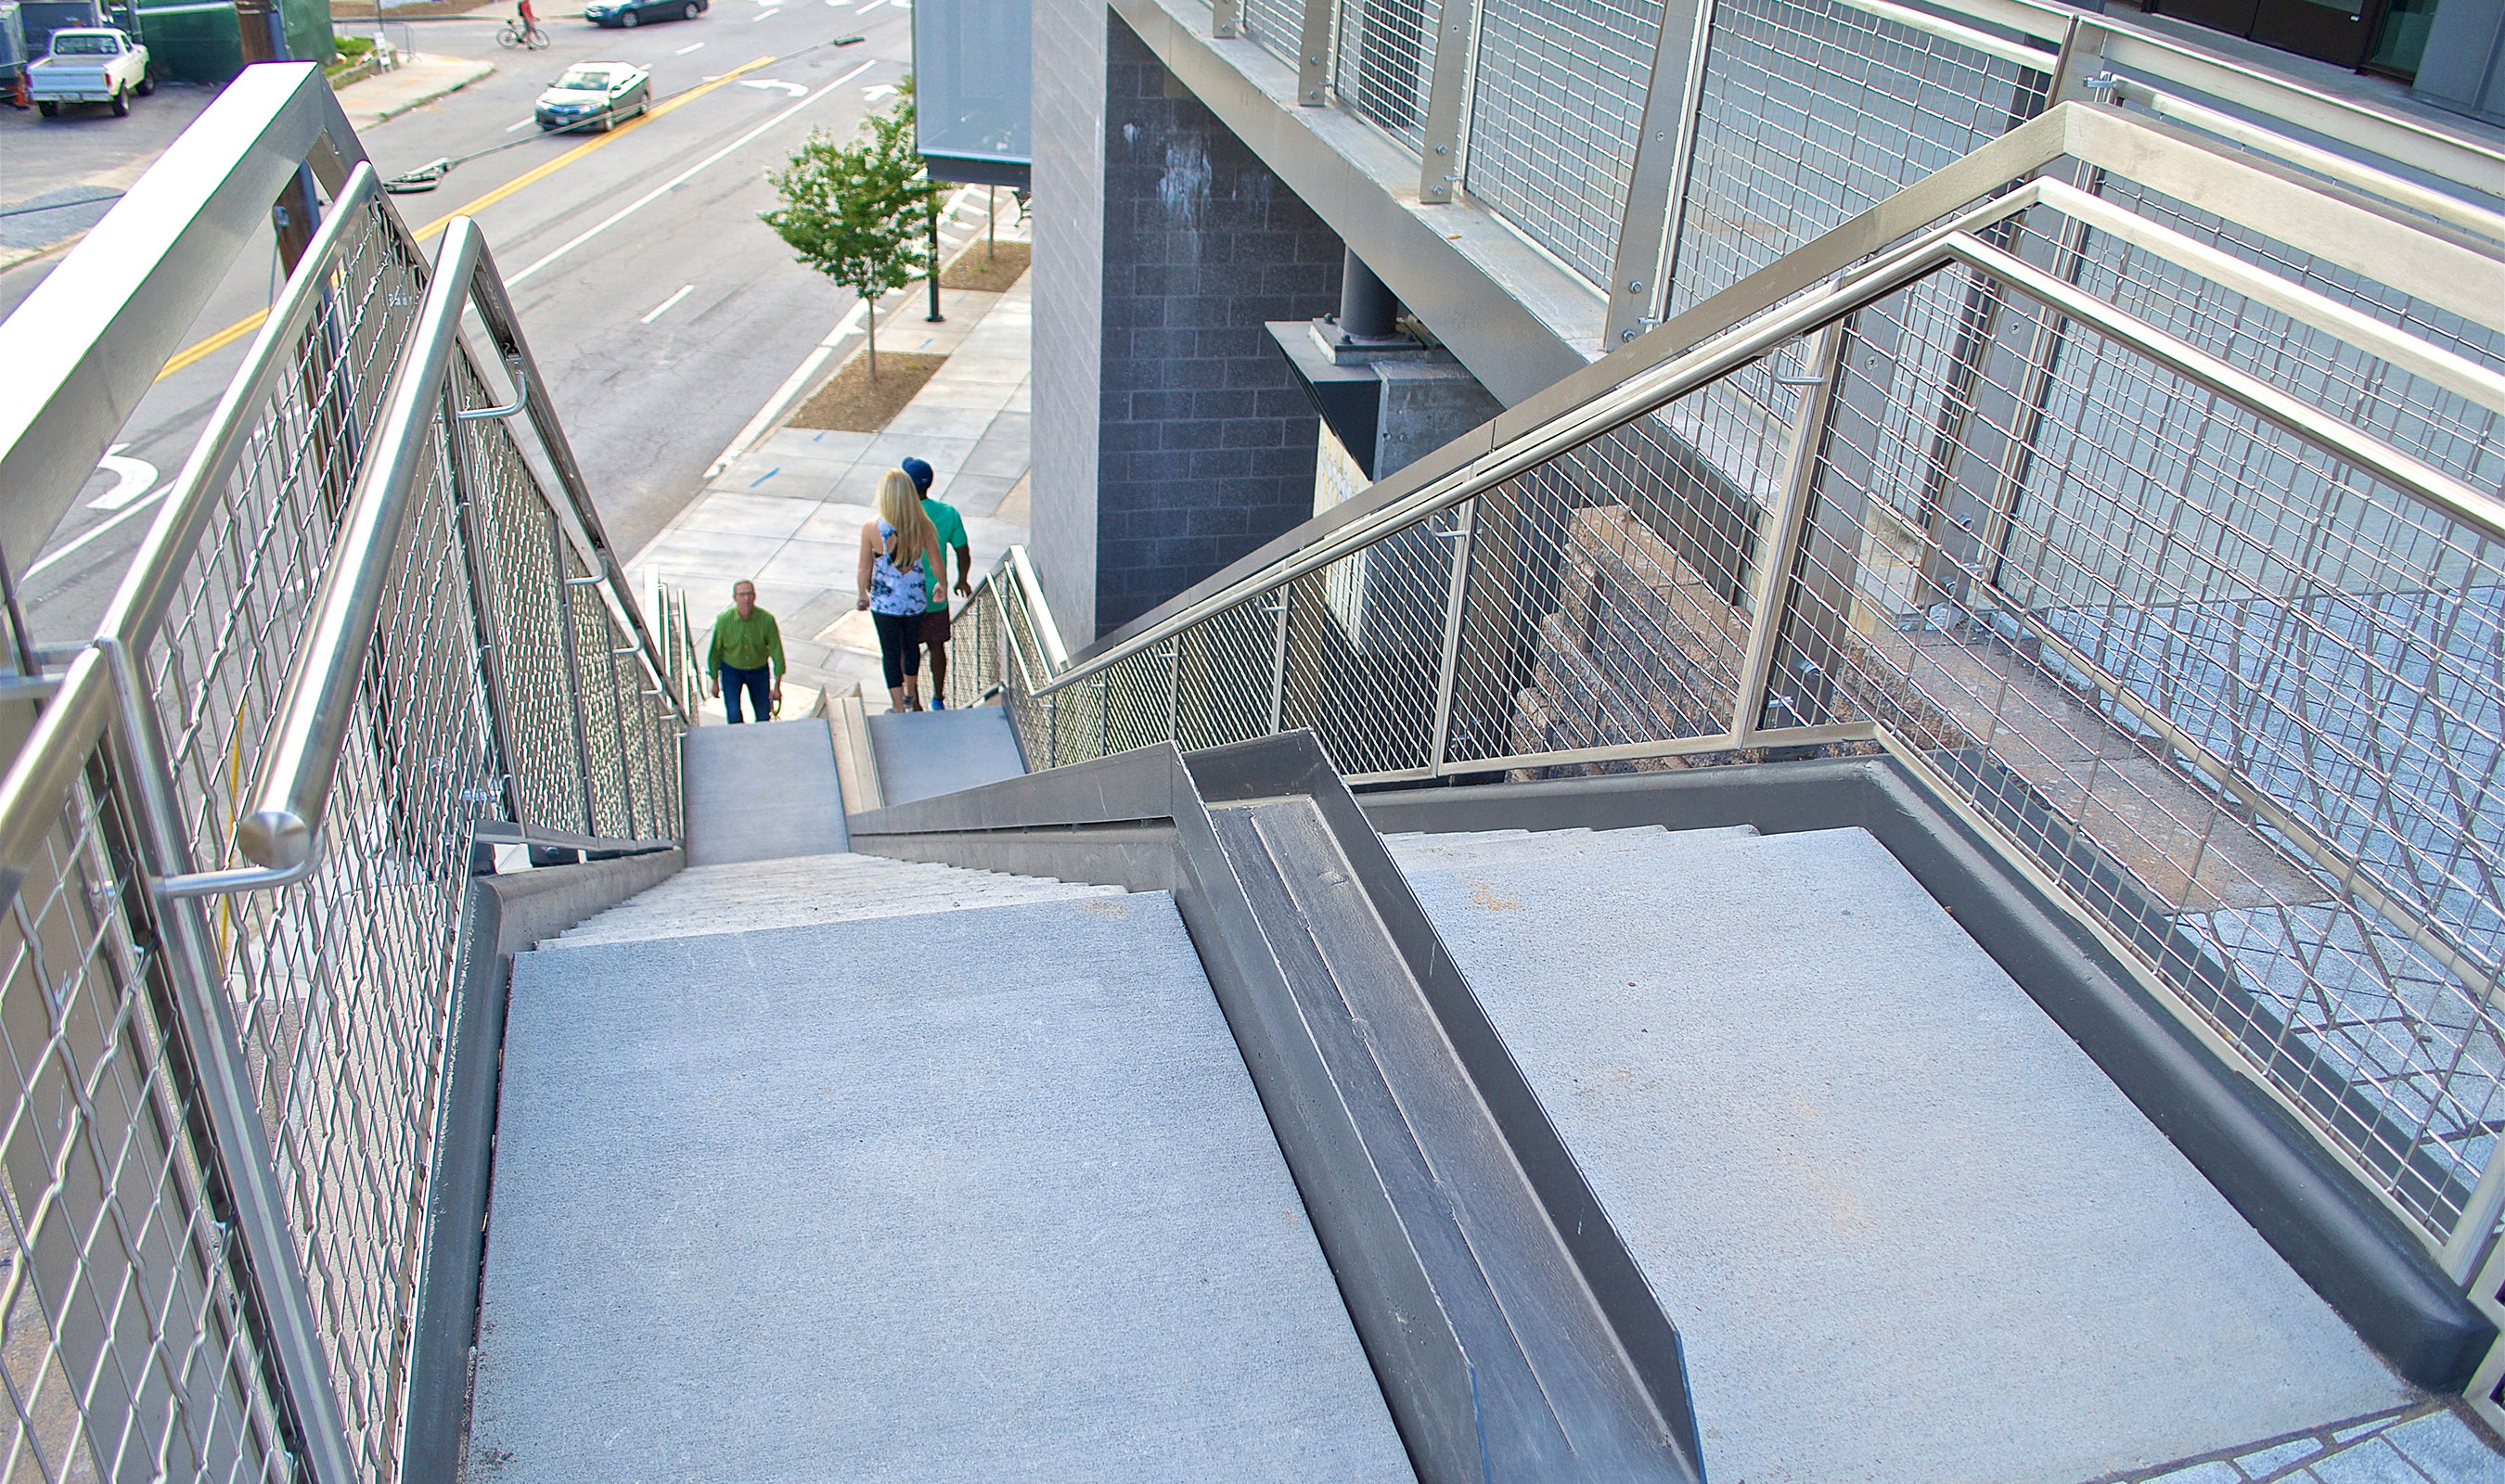 Banker Wire's SJD-3 woven wire mesh in stainless steel provides infill for 5,040 linear feet of railings along the BeltLine's Westside Trail — a 3-mile railroad corridor that was converted to a multi-use trail.